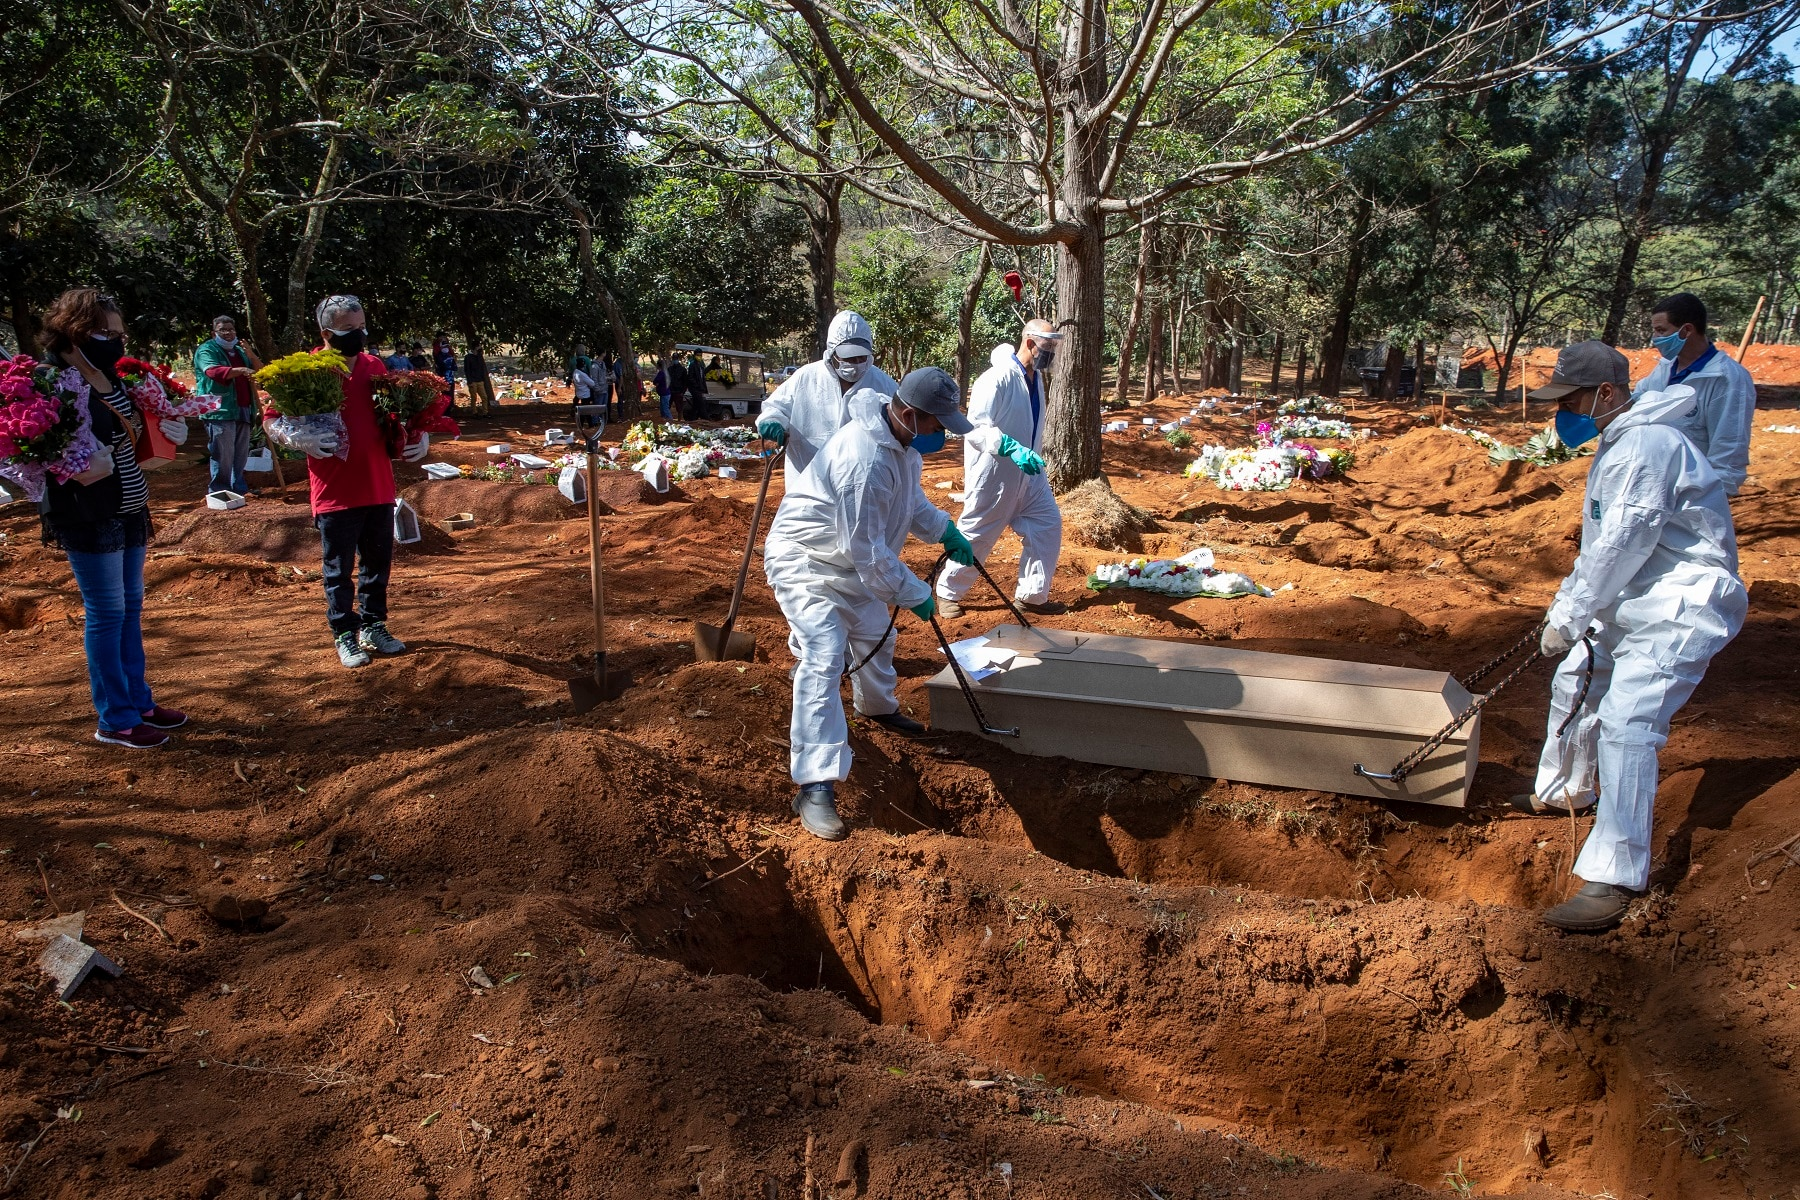 Cemetery workers in protective clothing bury the bodies of COVID-19 victims at the Vila Formosa cemetery in Sao Paulo, Brazil.